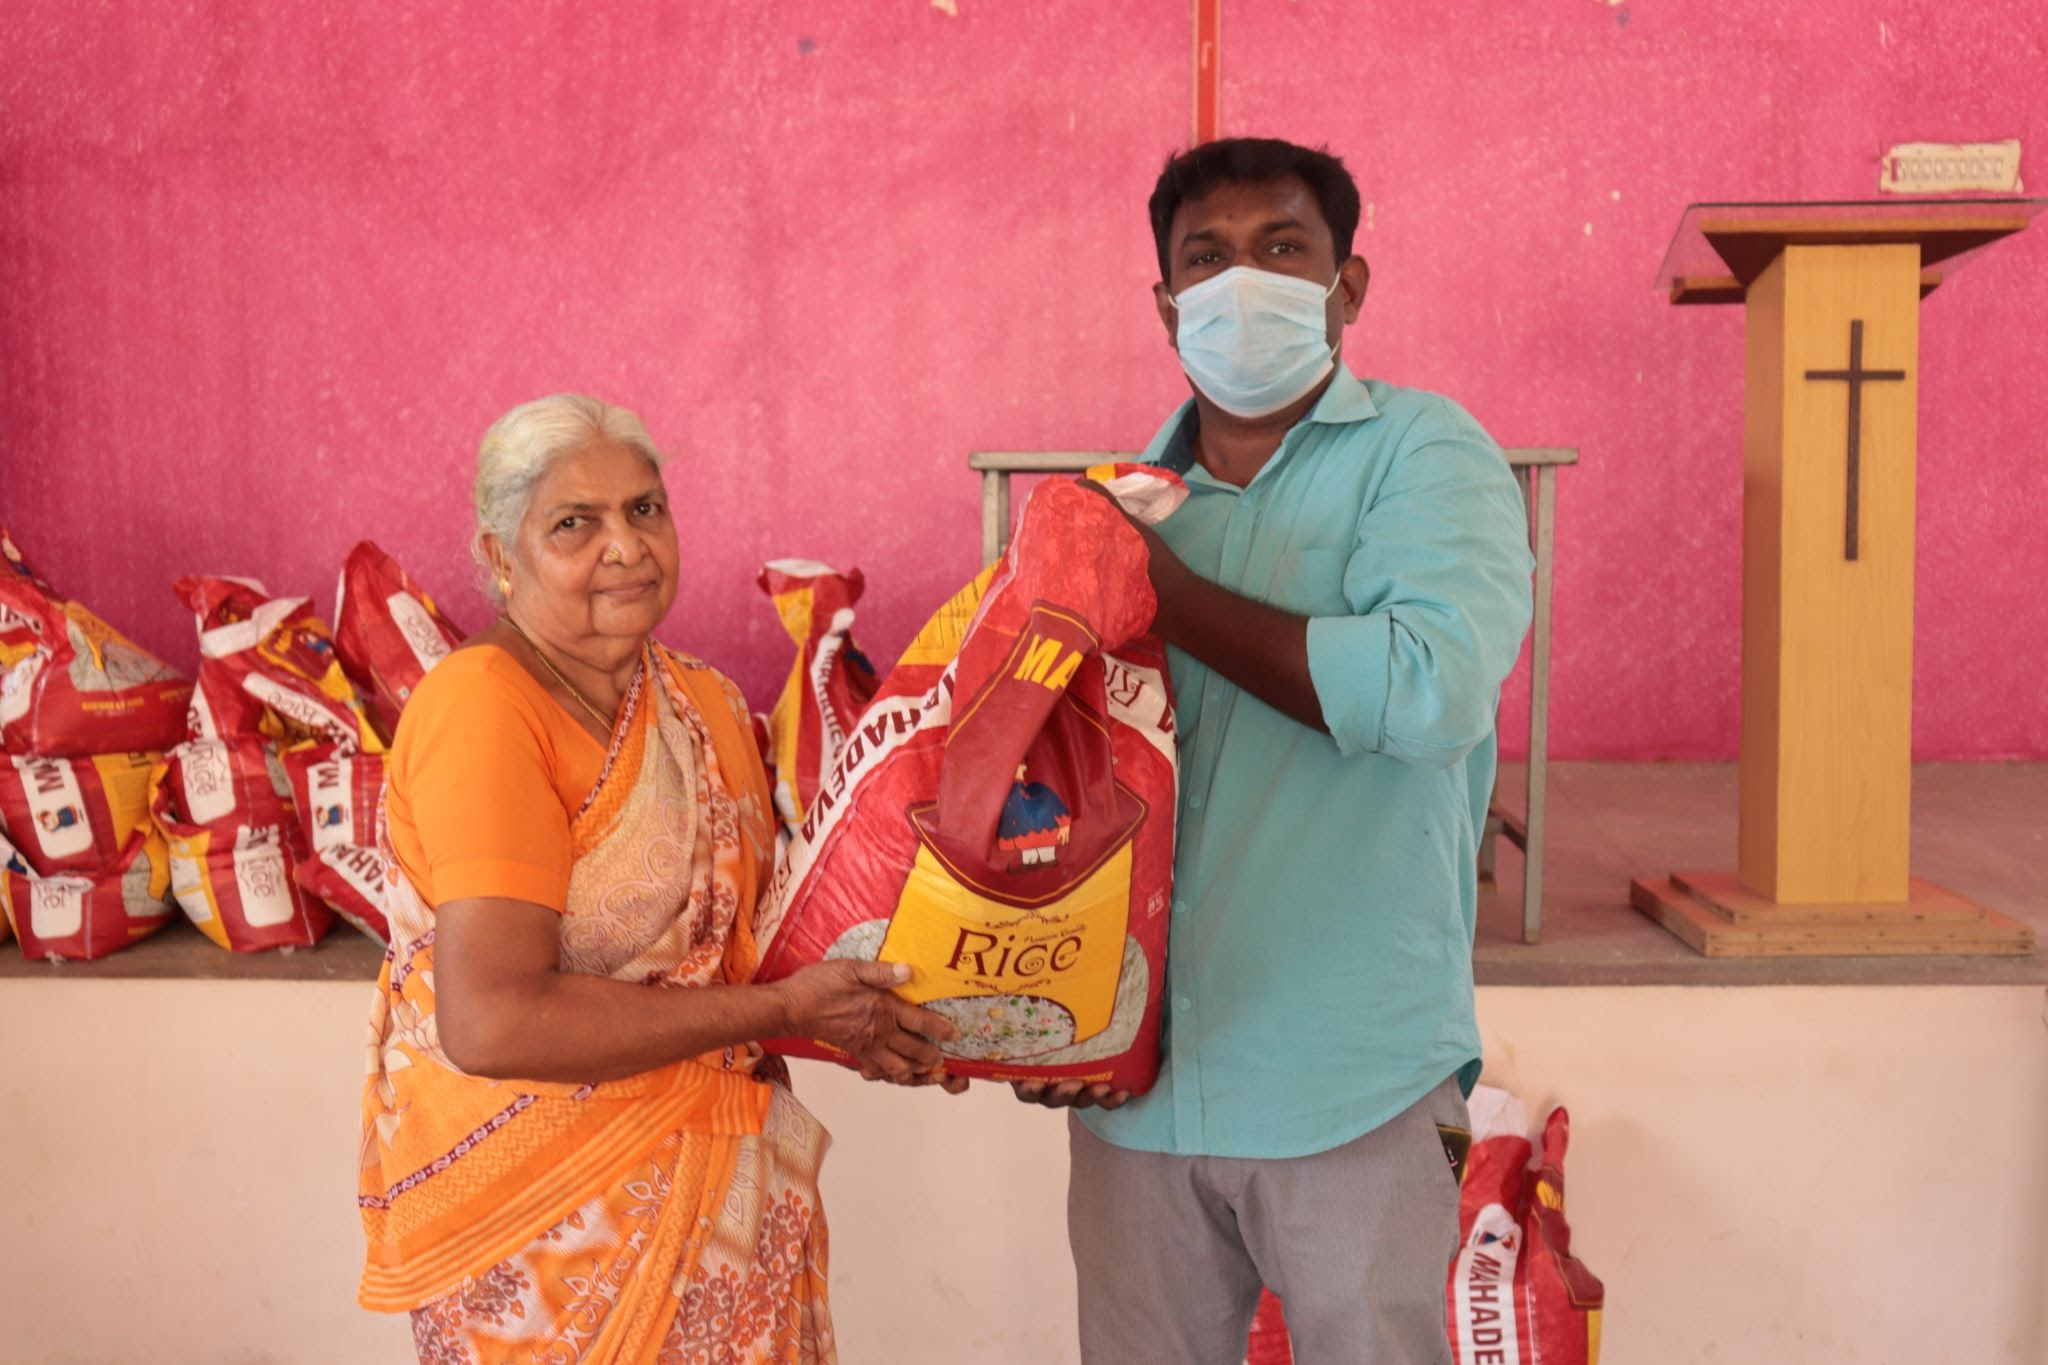 Villager offers heartfelt thanks for food and medical supplies